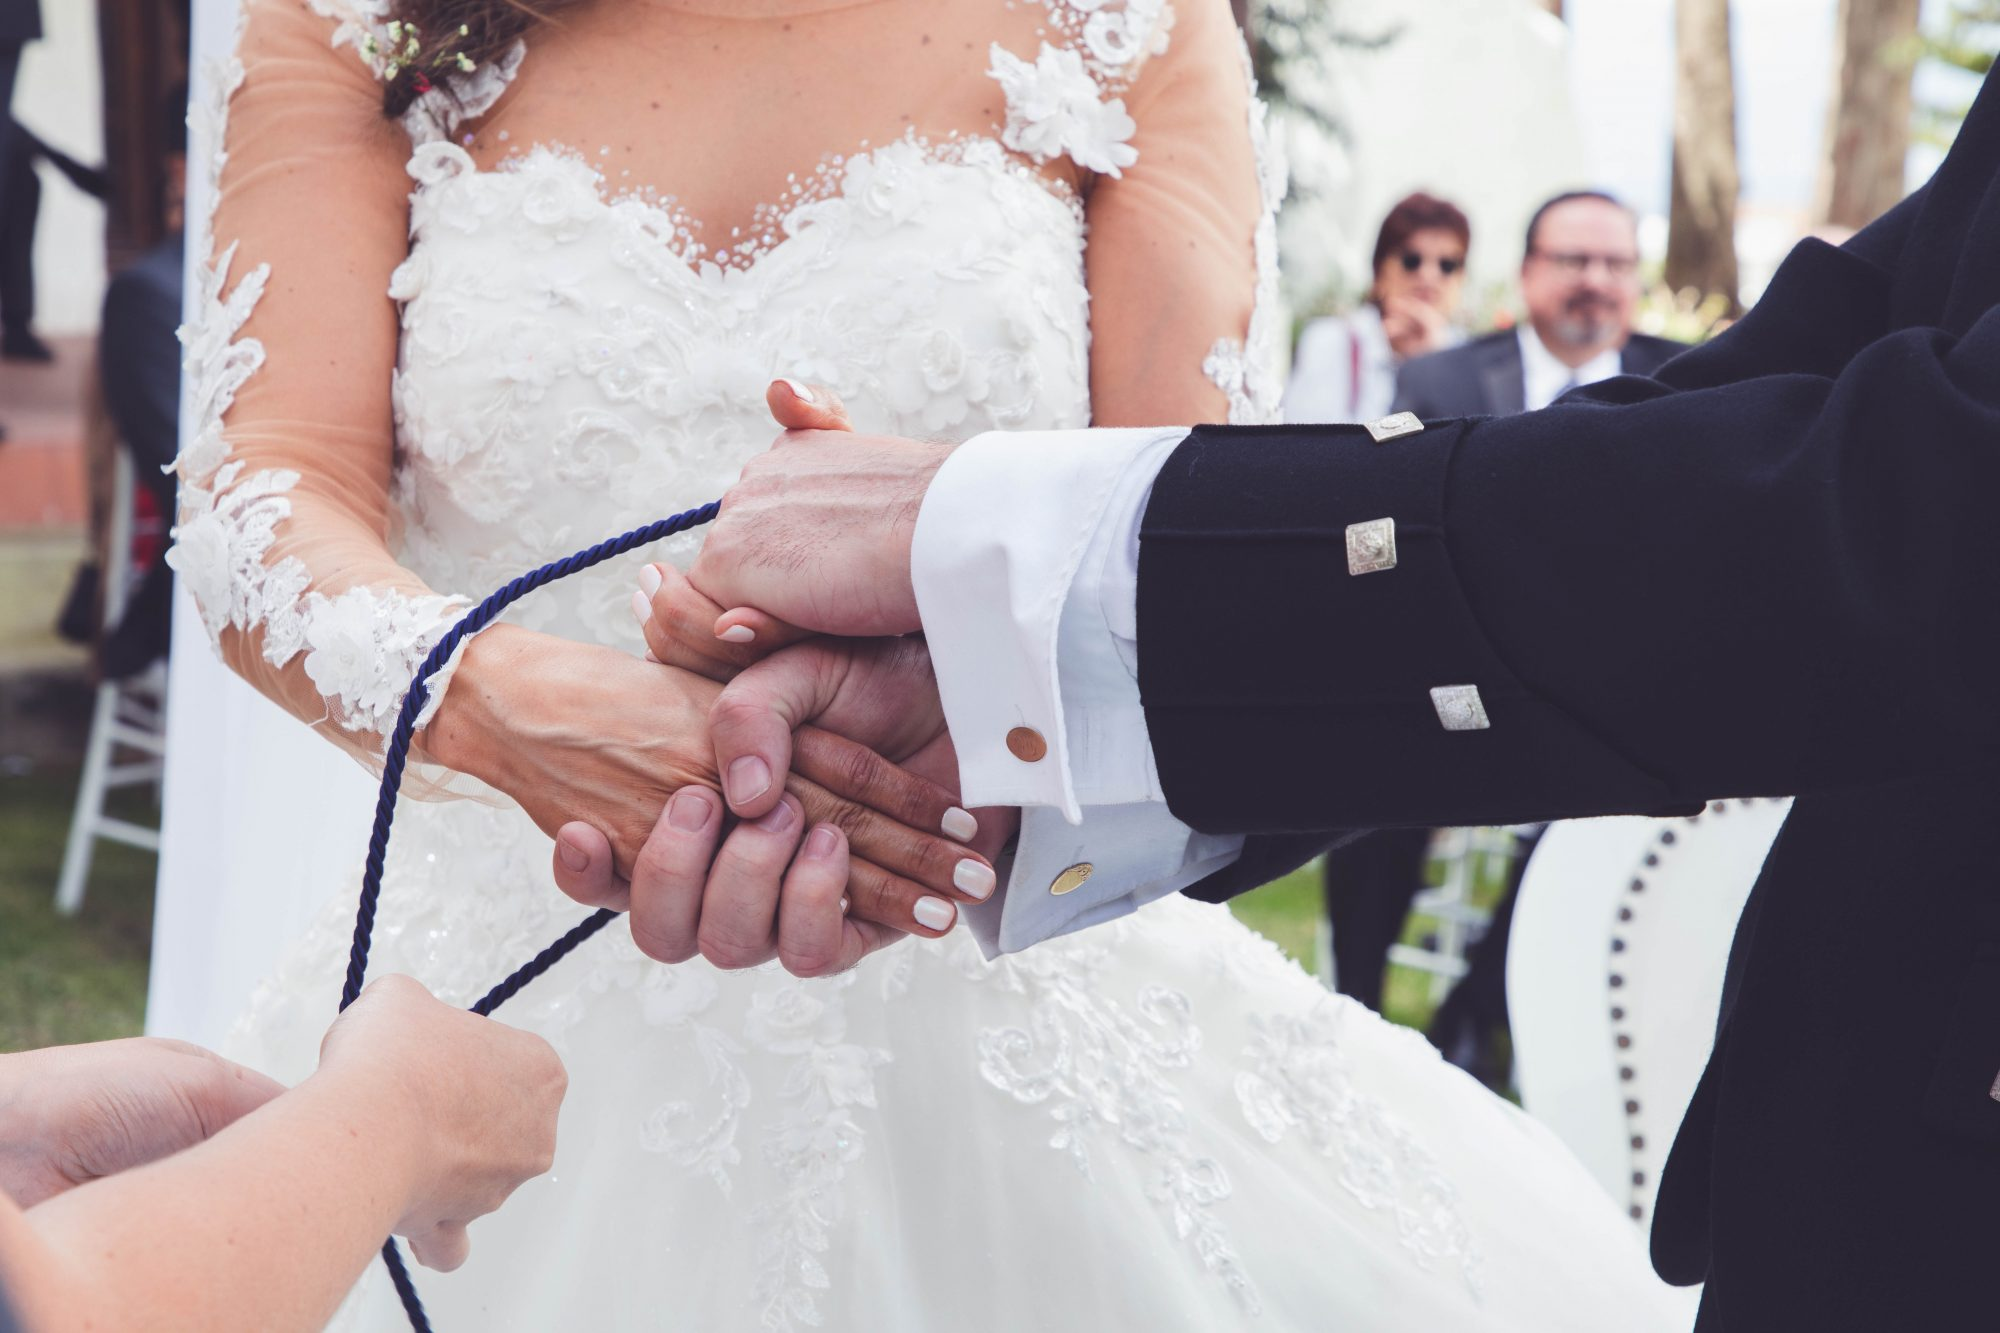 couple's hands being tied with purple cord at wedding